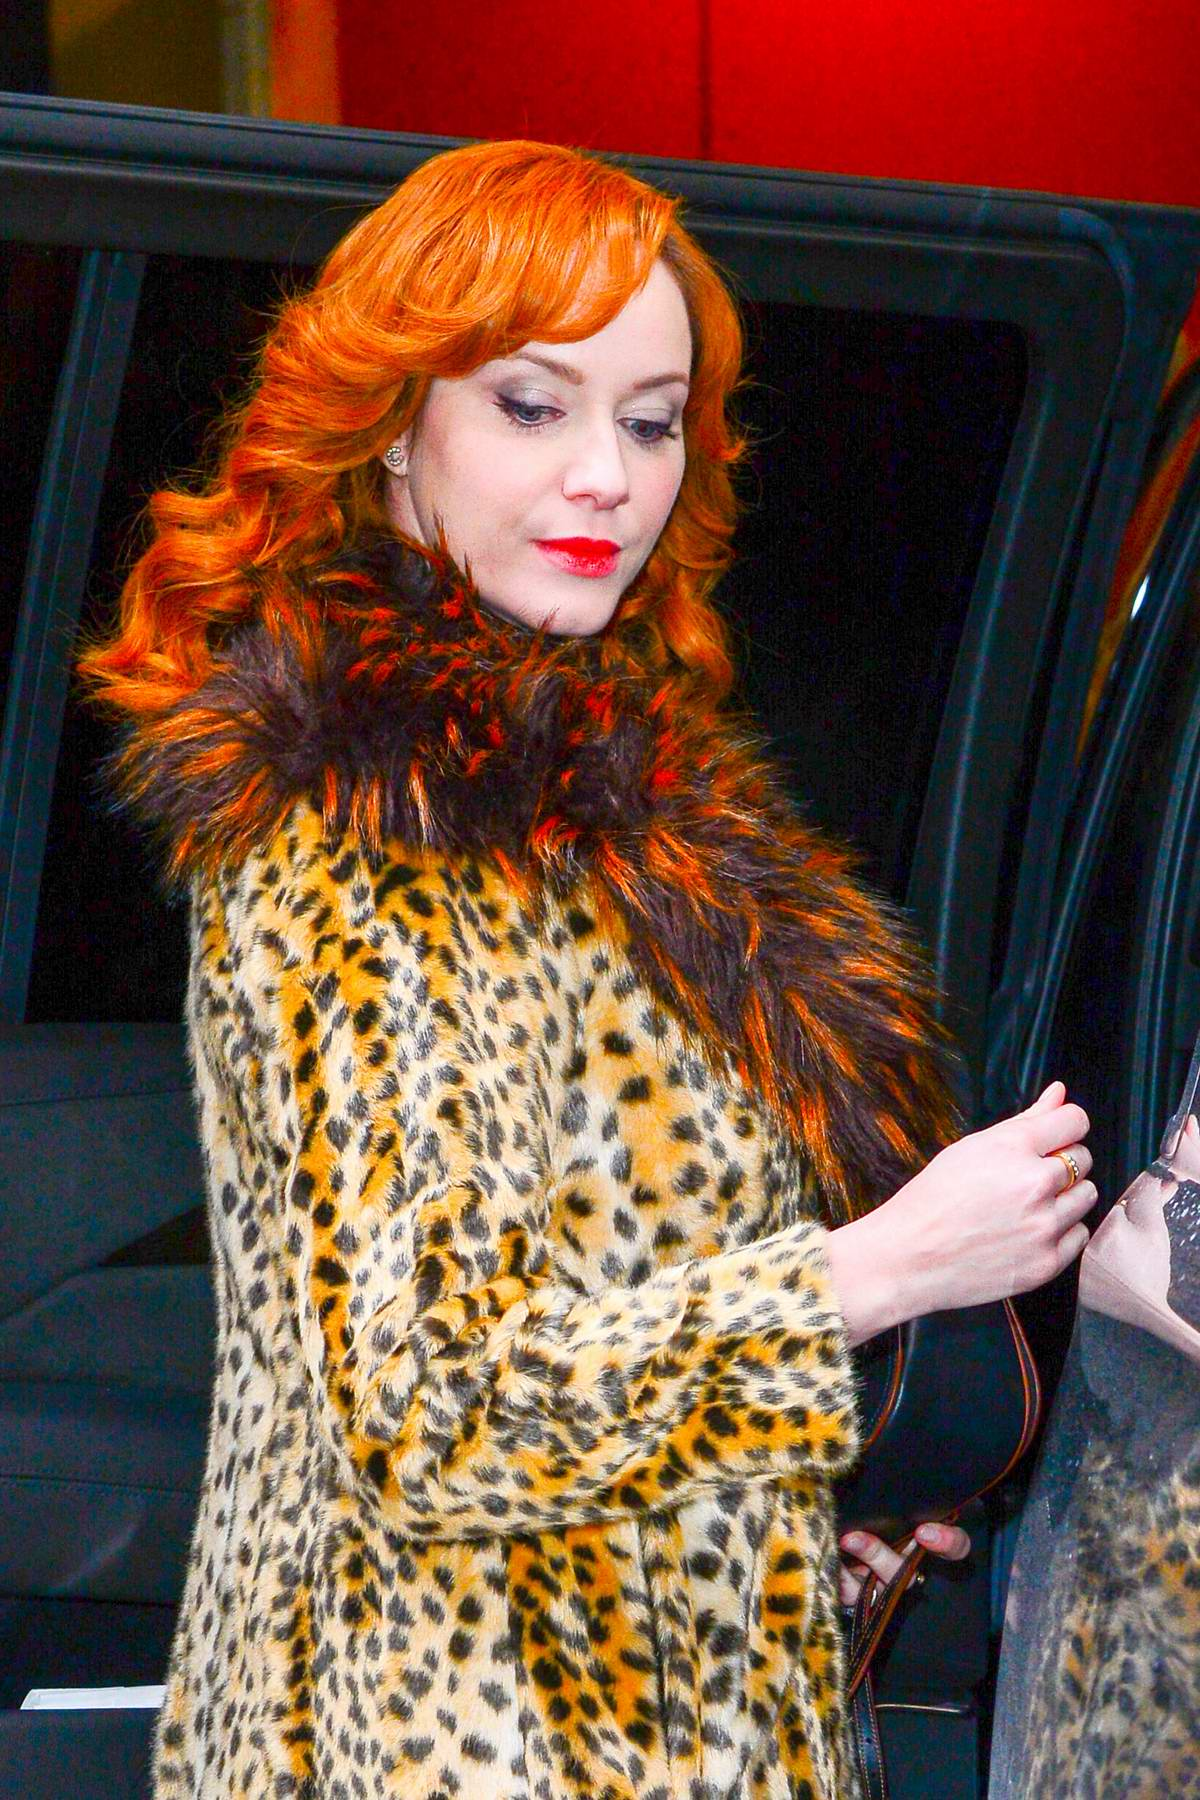 80bddaf3e04f christina hendricks wearing a fur lapel leopard print coat as she arrives  at an office building in new york city-131217_5